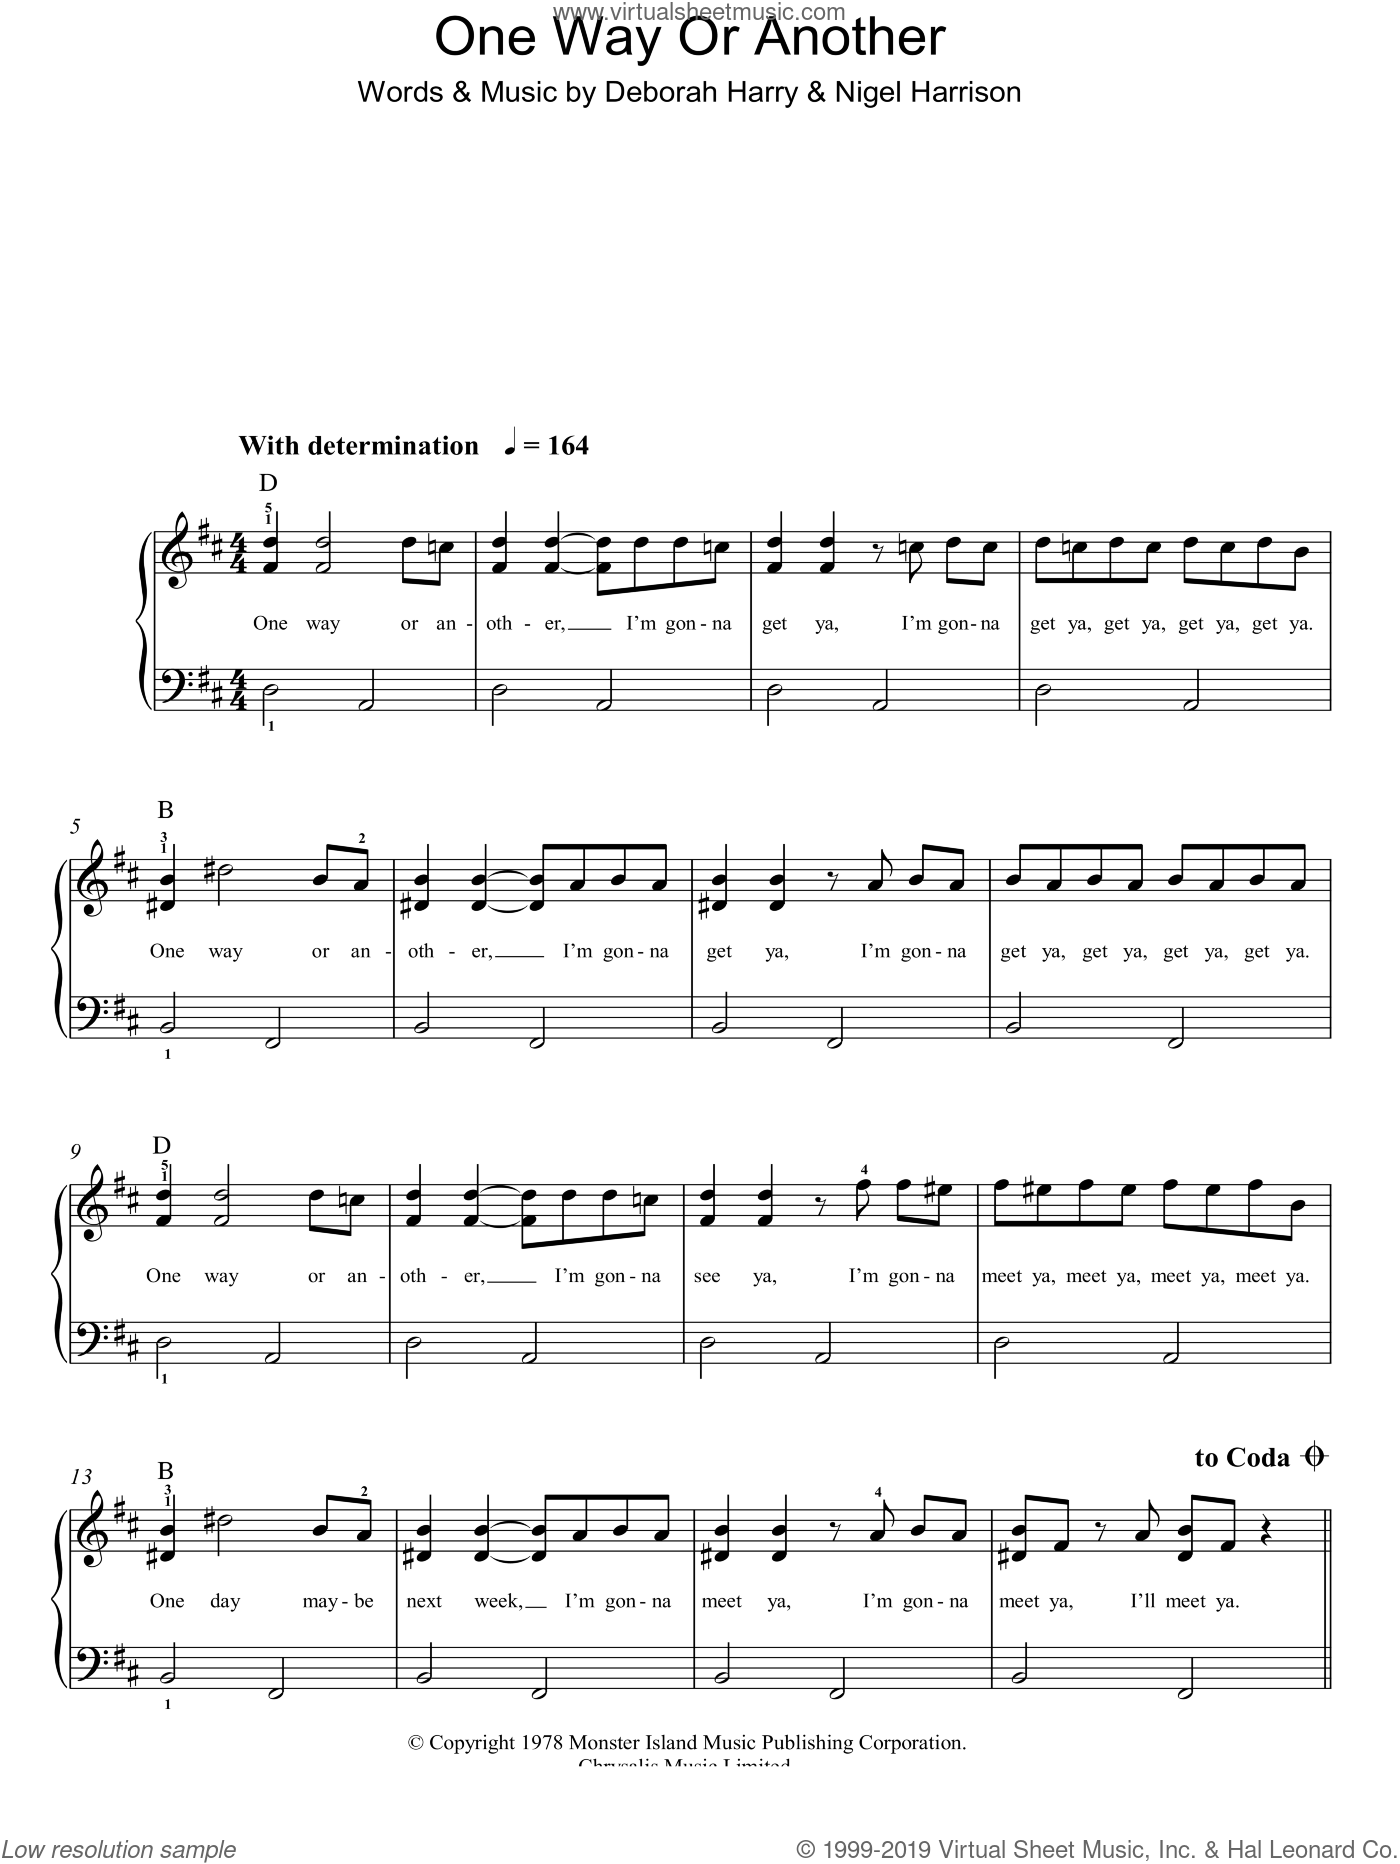 One Way Or Another sheet music for piano solo (chords) by Deborah Harry